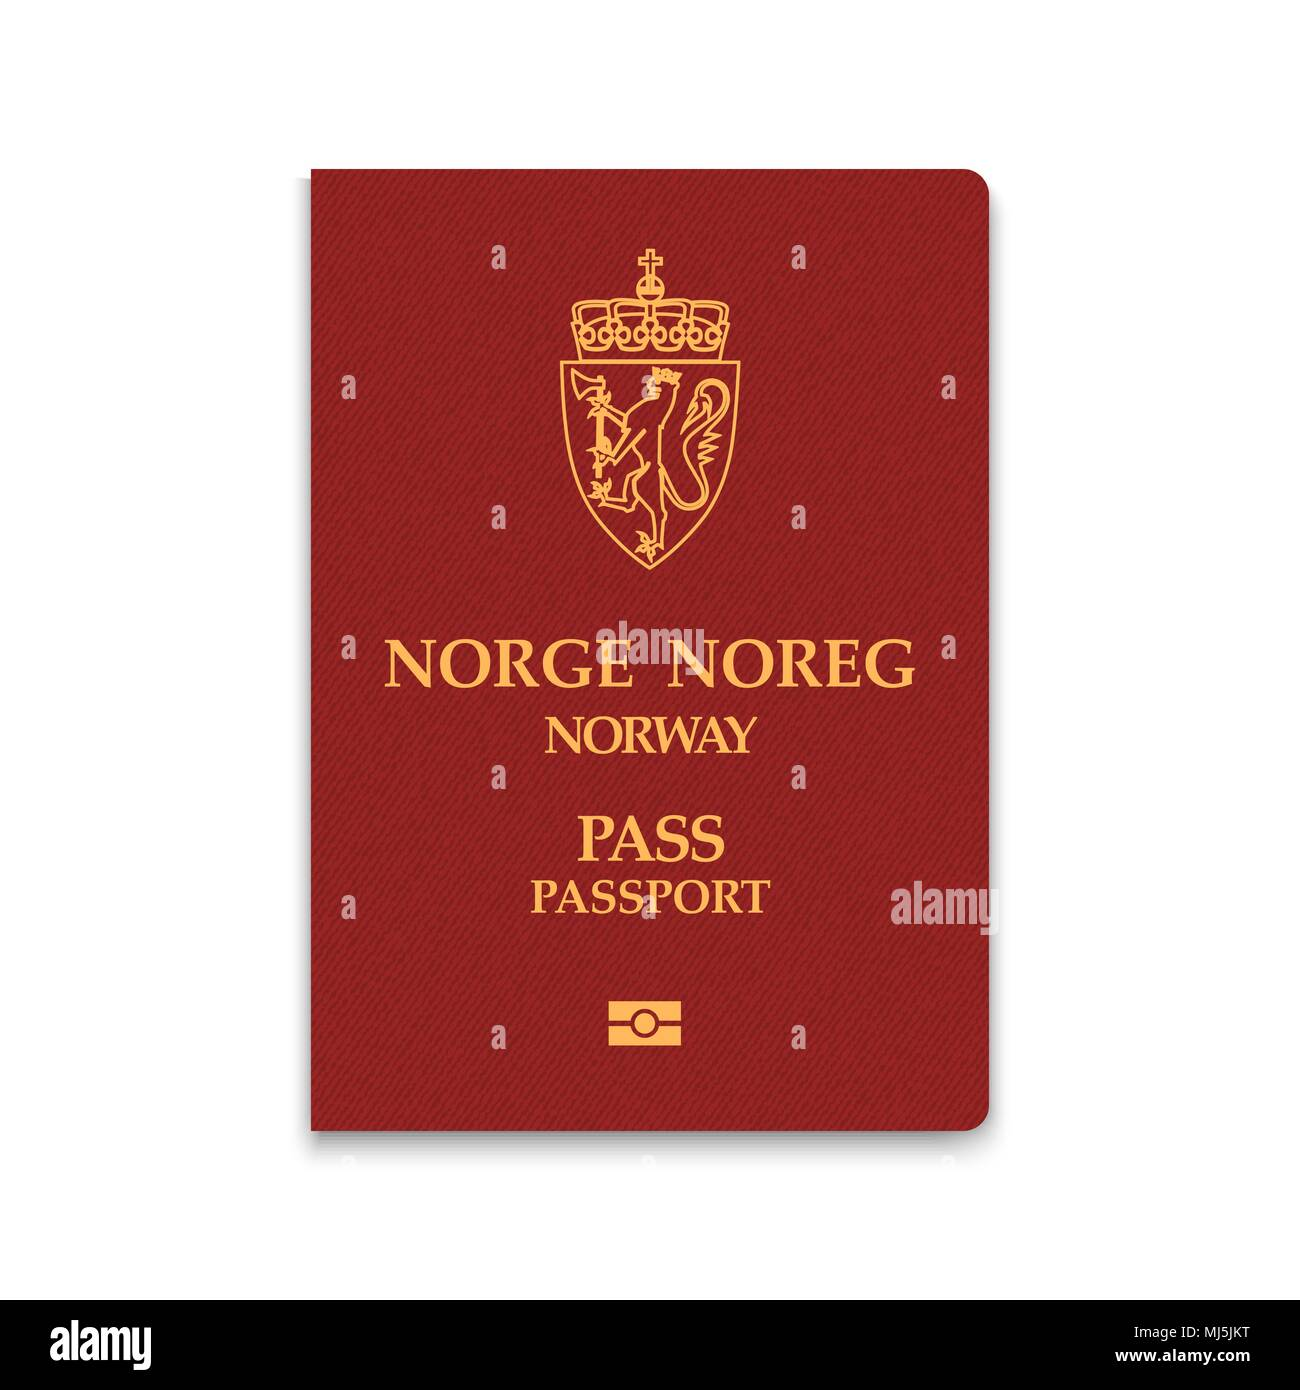 Passport of Norway. Vector illustration - Stock Image